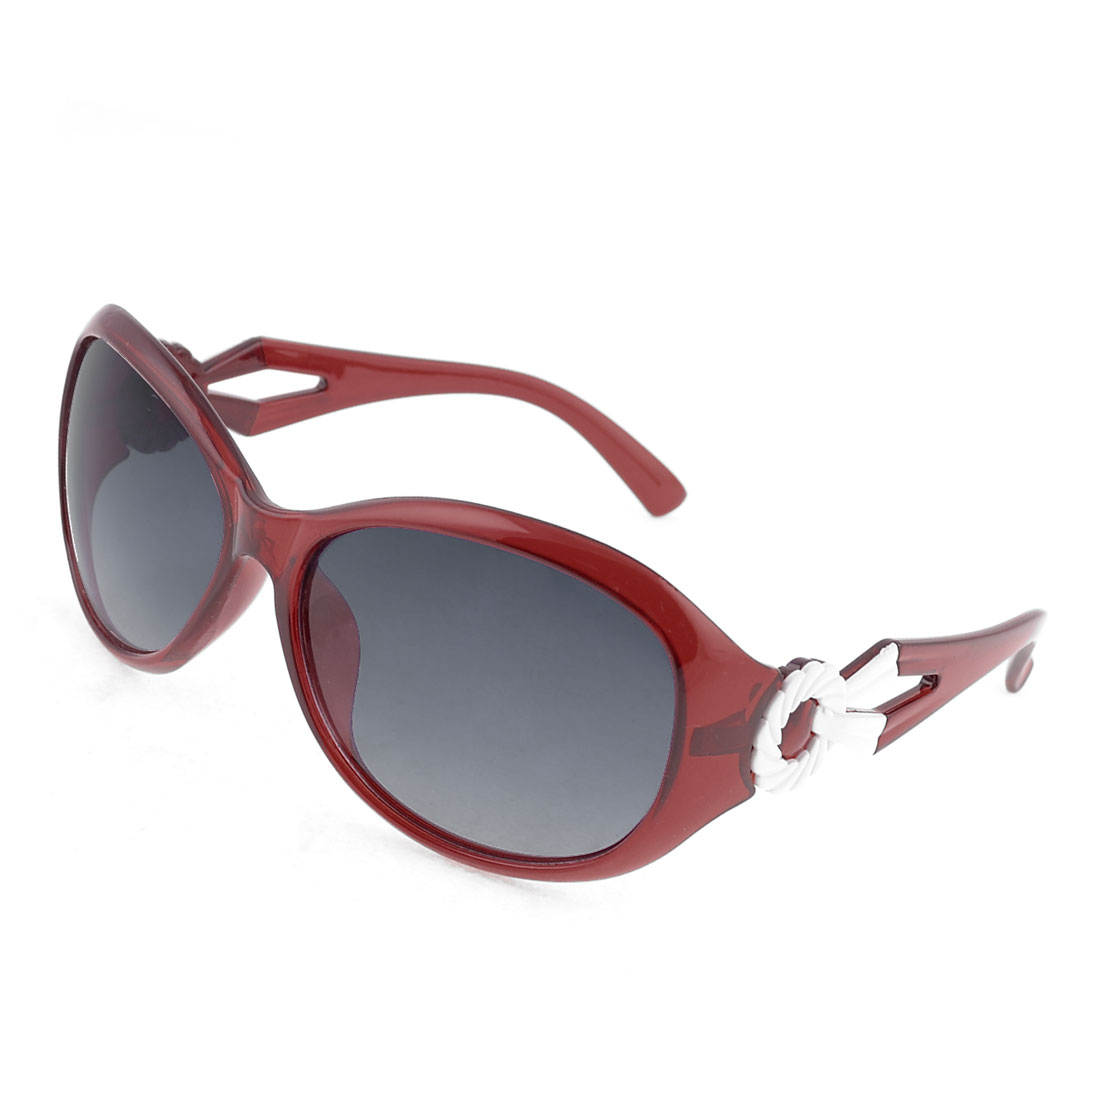 Burgundy Plastic Arms Full Rim Wreath Decor Sunglasses for Women